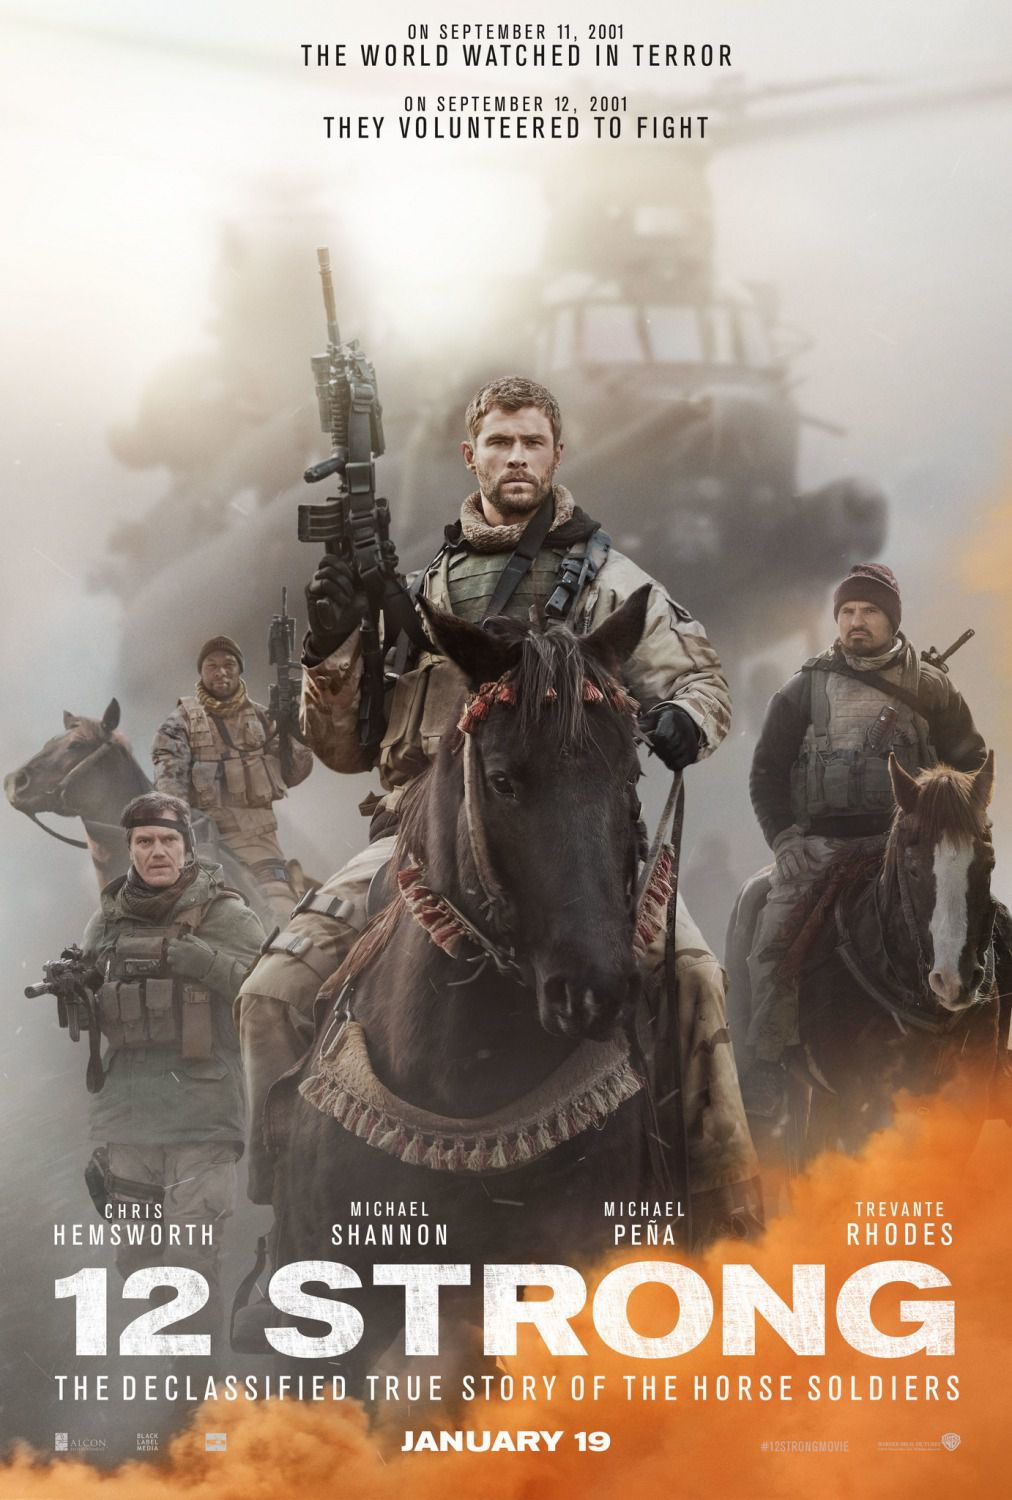 12 Strong - 2018 - Chris Hemsworth Michael Shannon Michael Pena Elsa Pataky